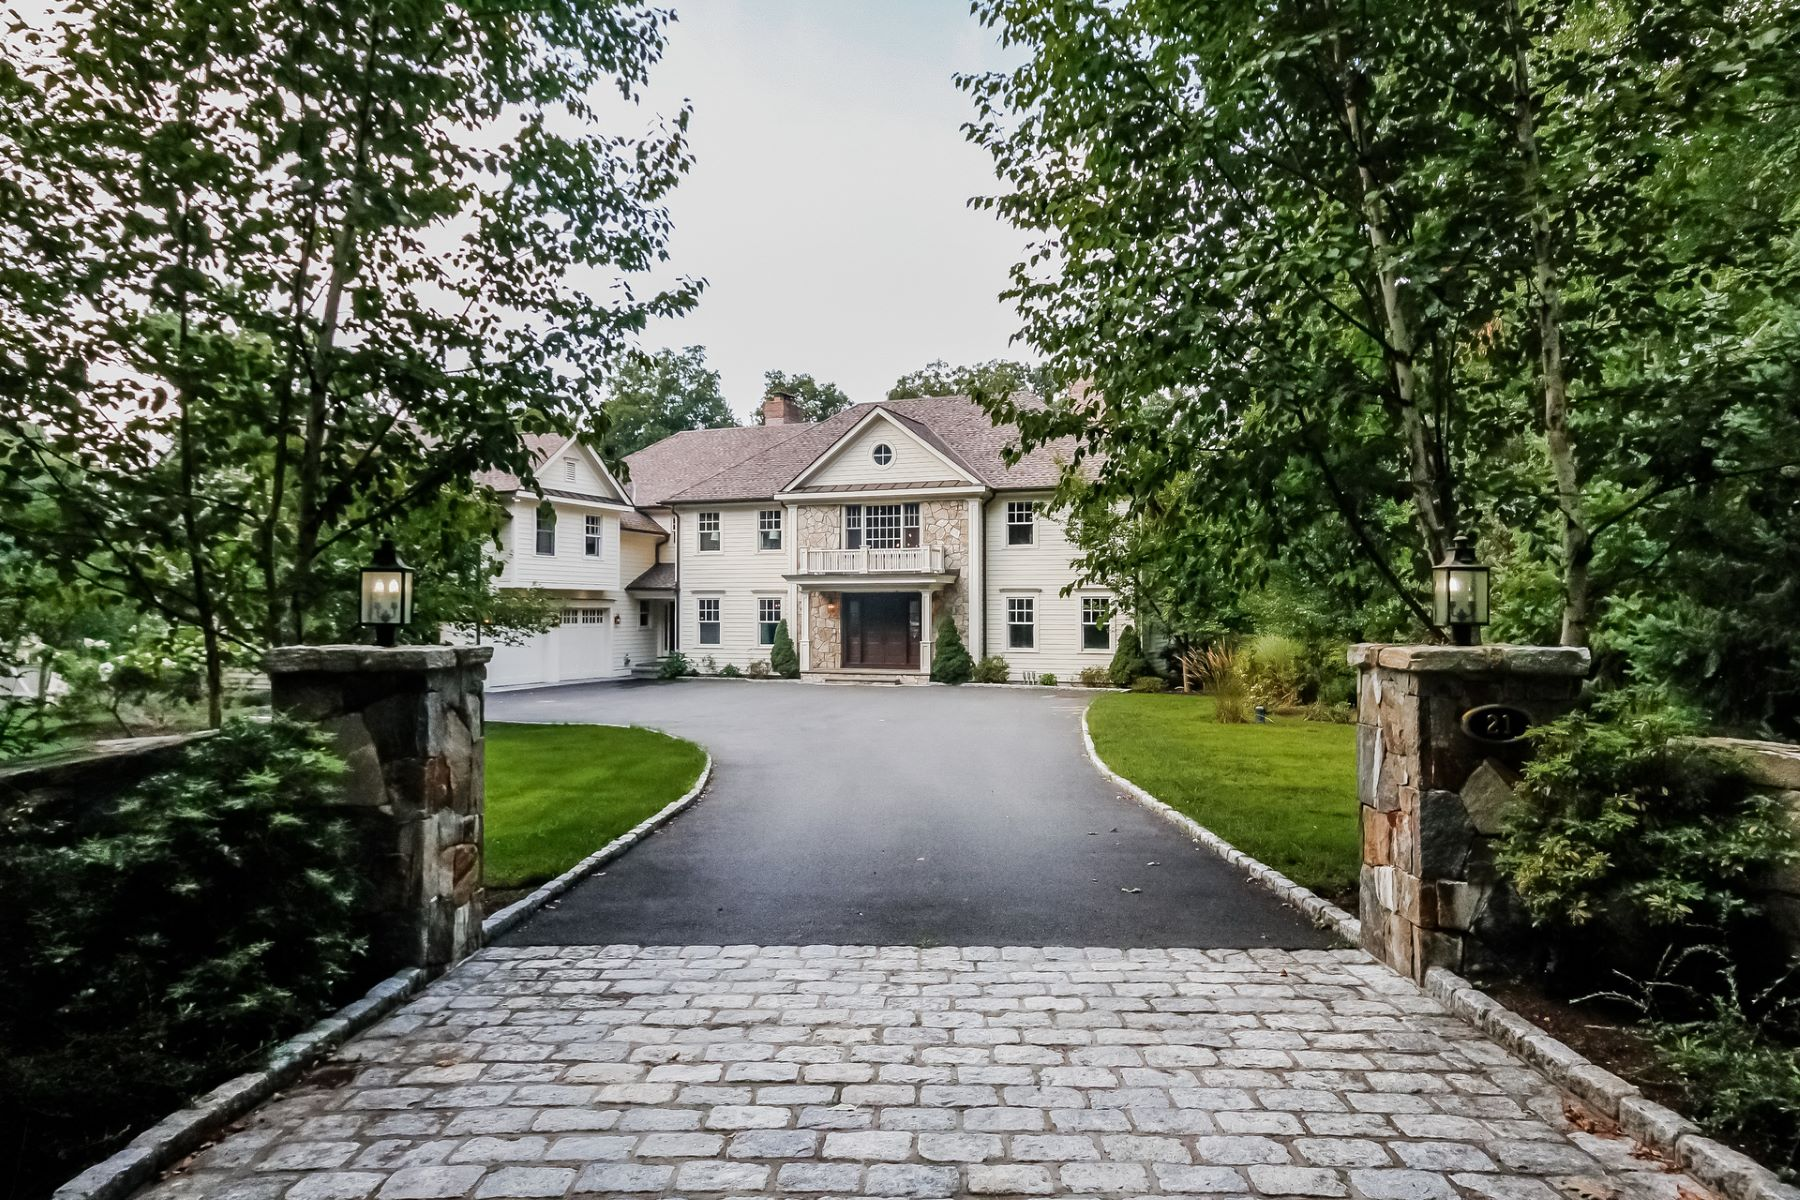 Single Family Homes for Active at 21 Richmond Hill Road Weston, Connecticut 06883 United States